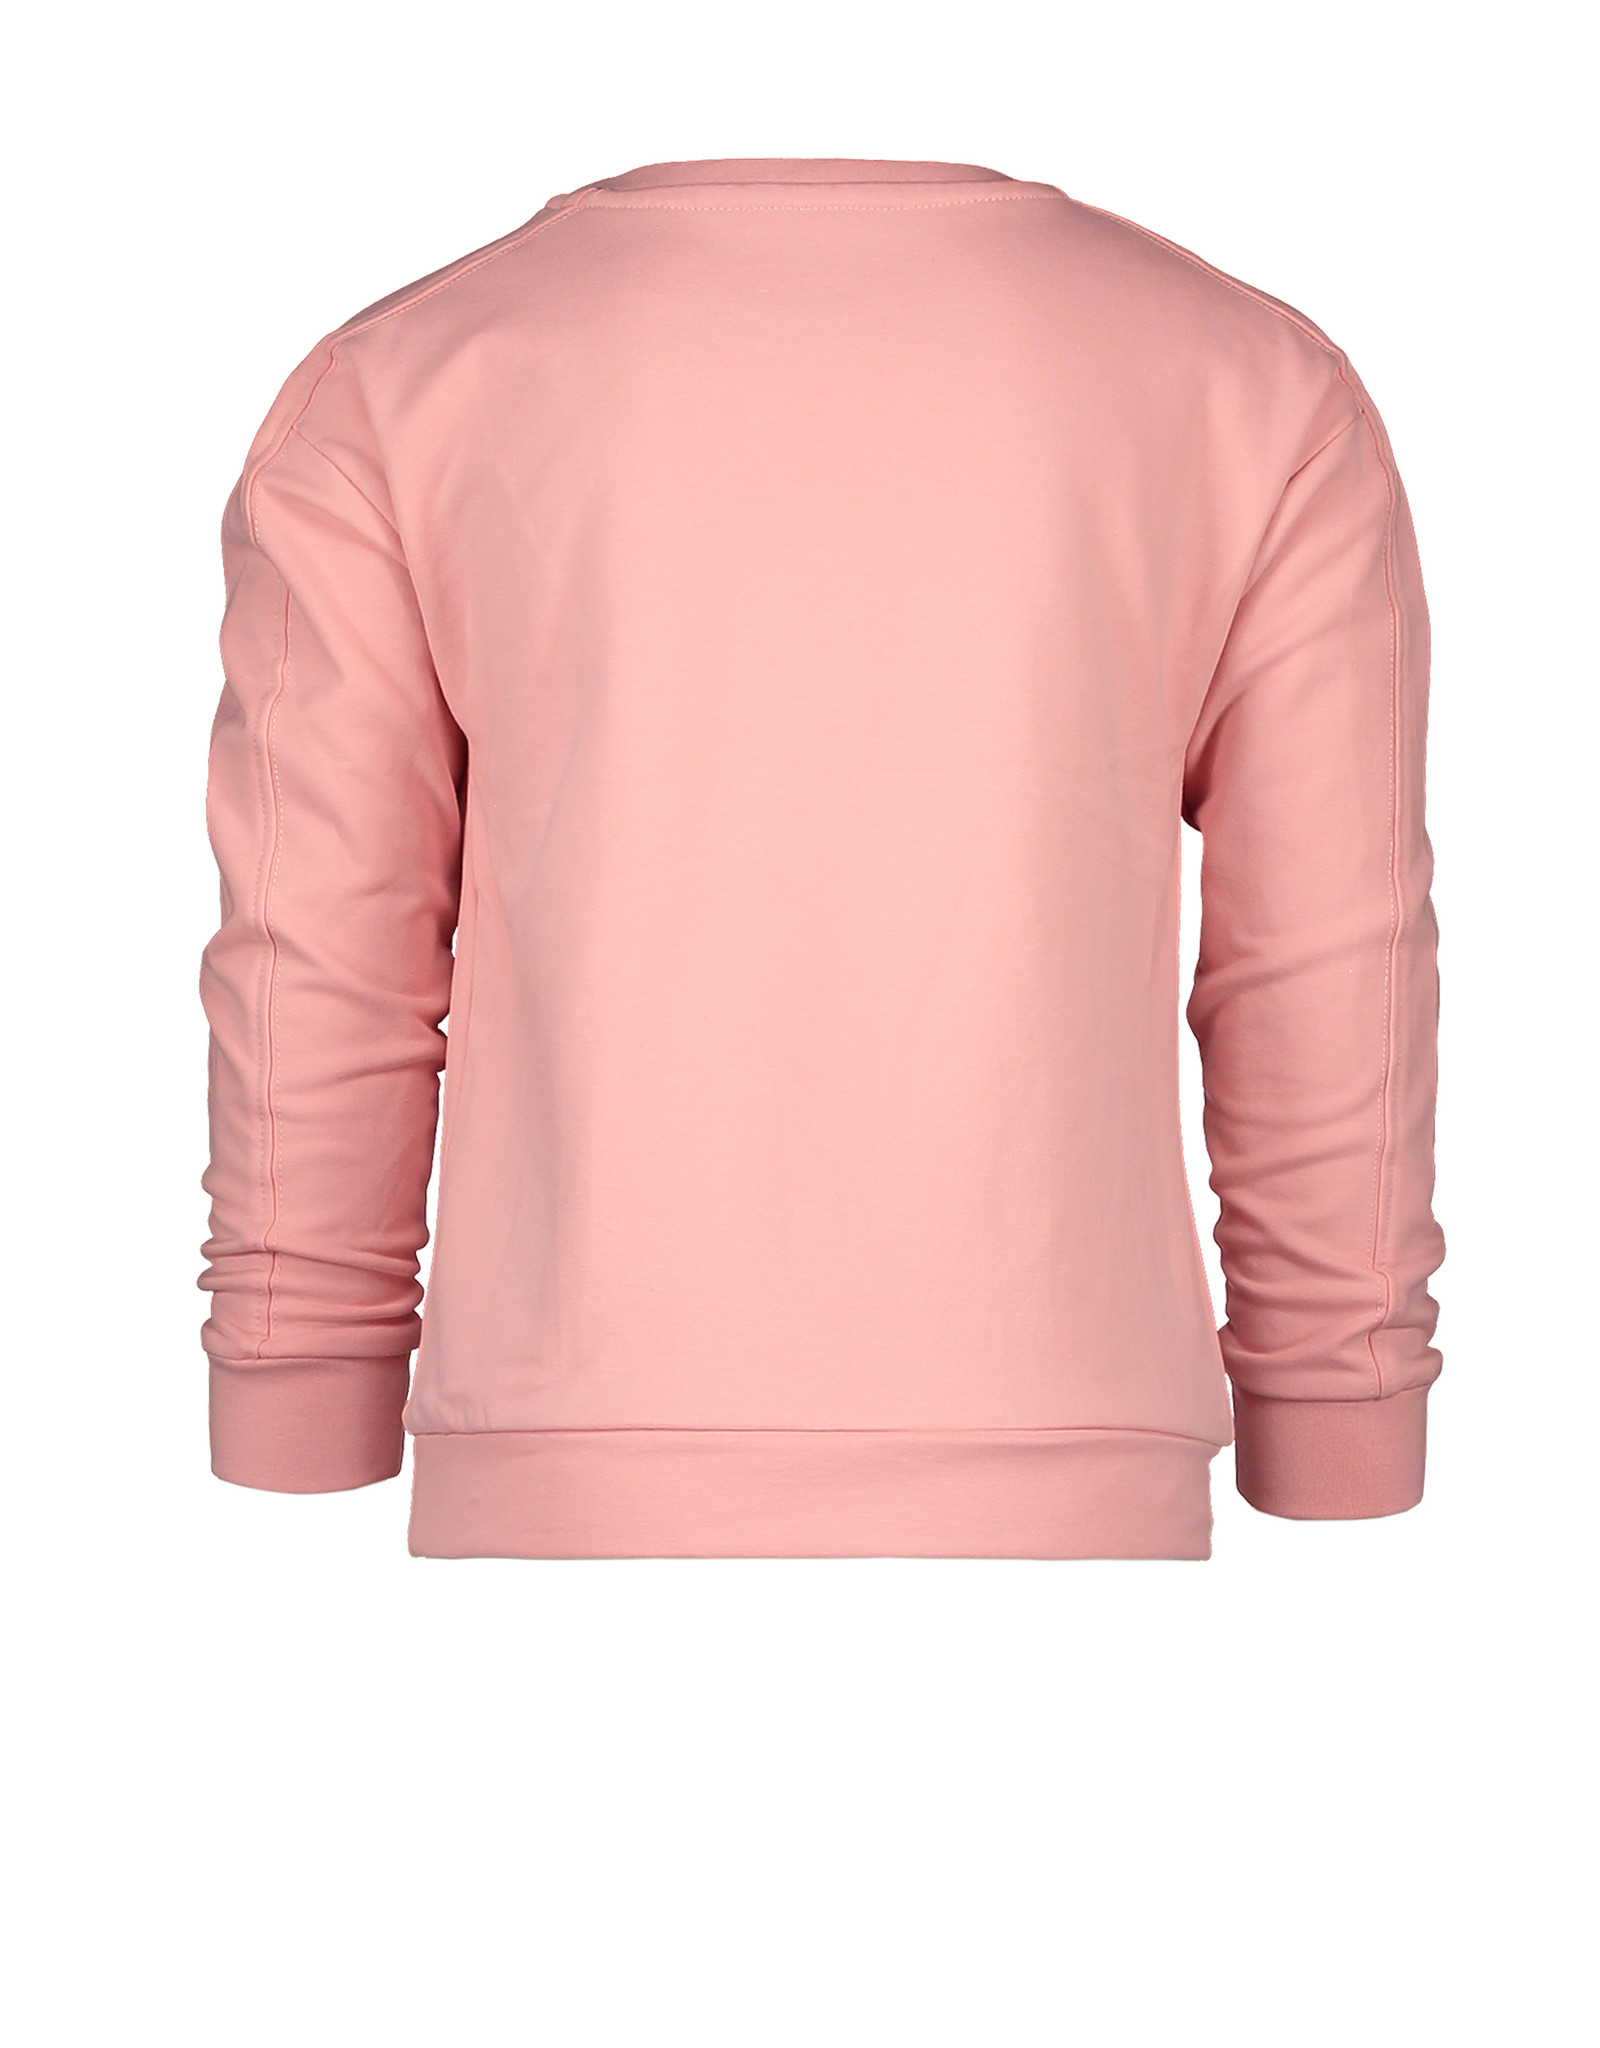 Moodstreet MT sweater with chest AW, Light pink